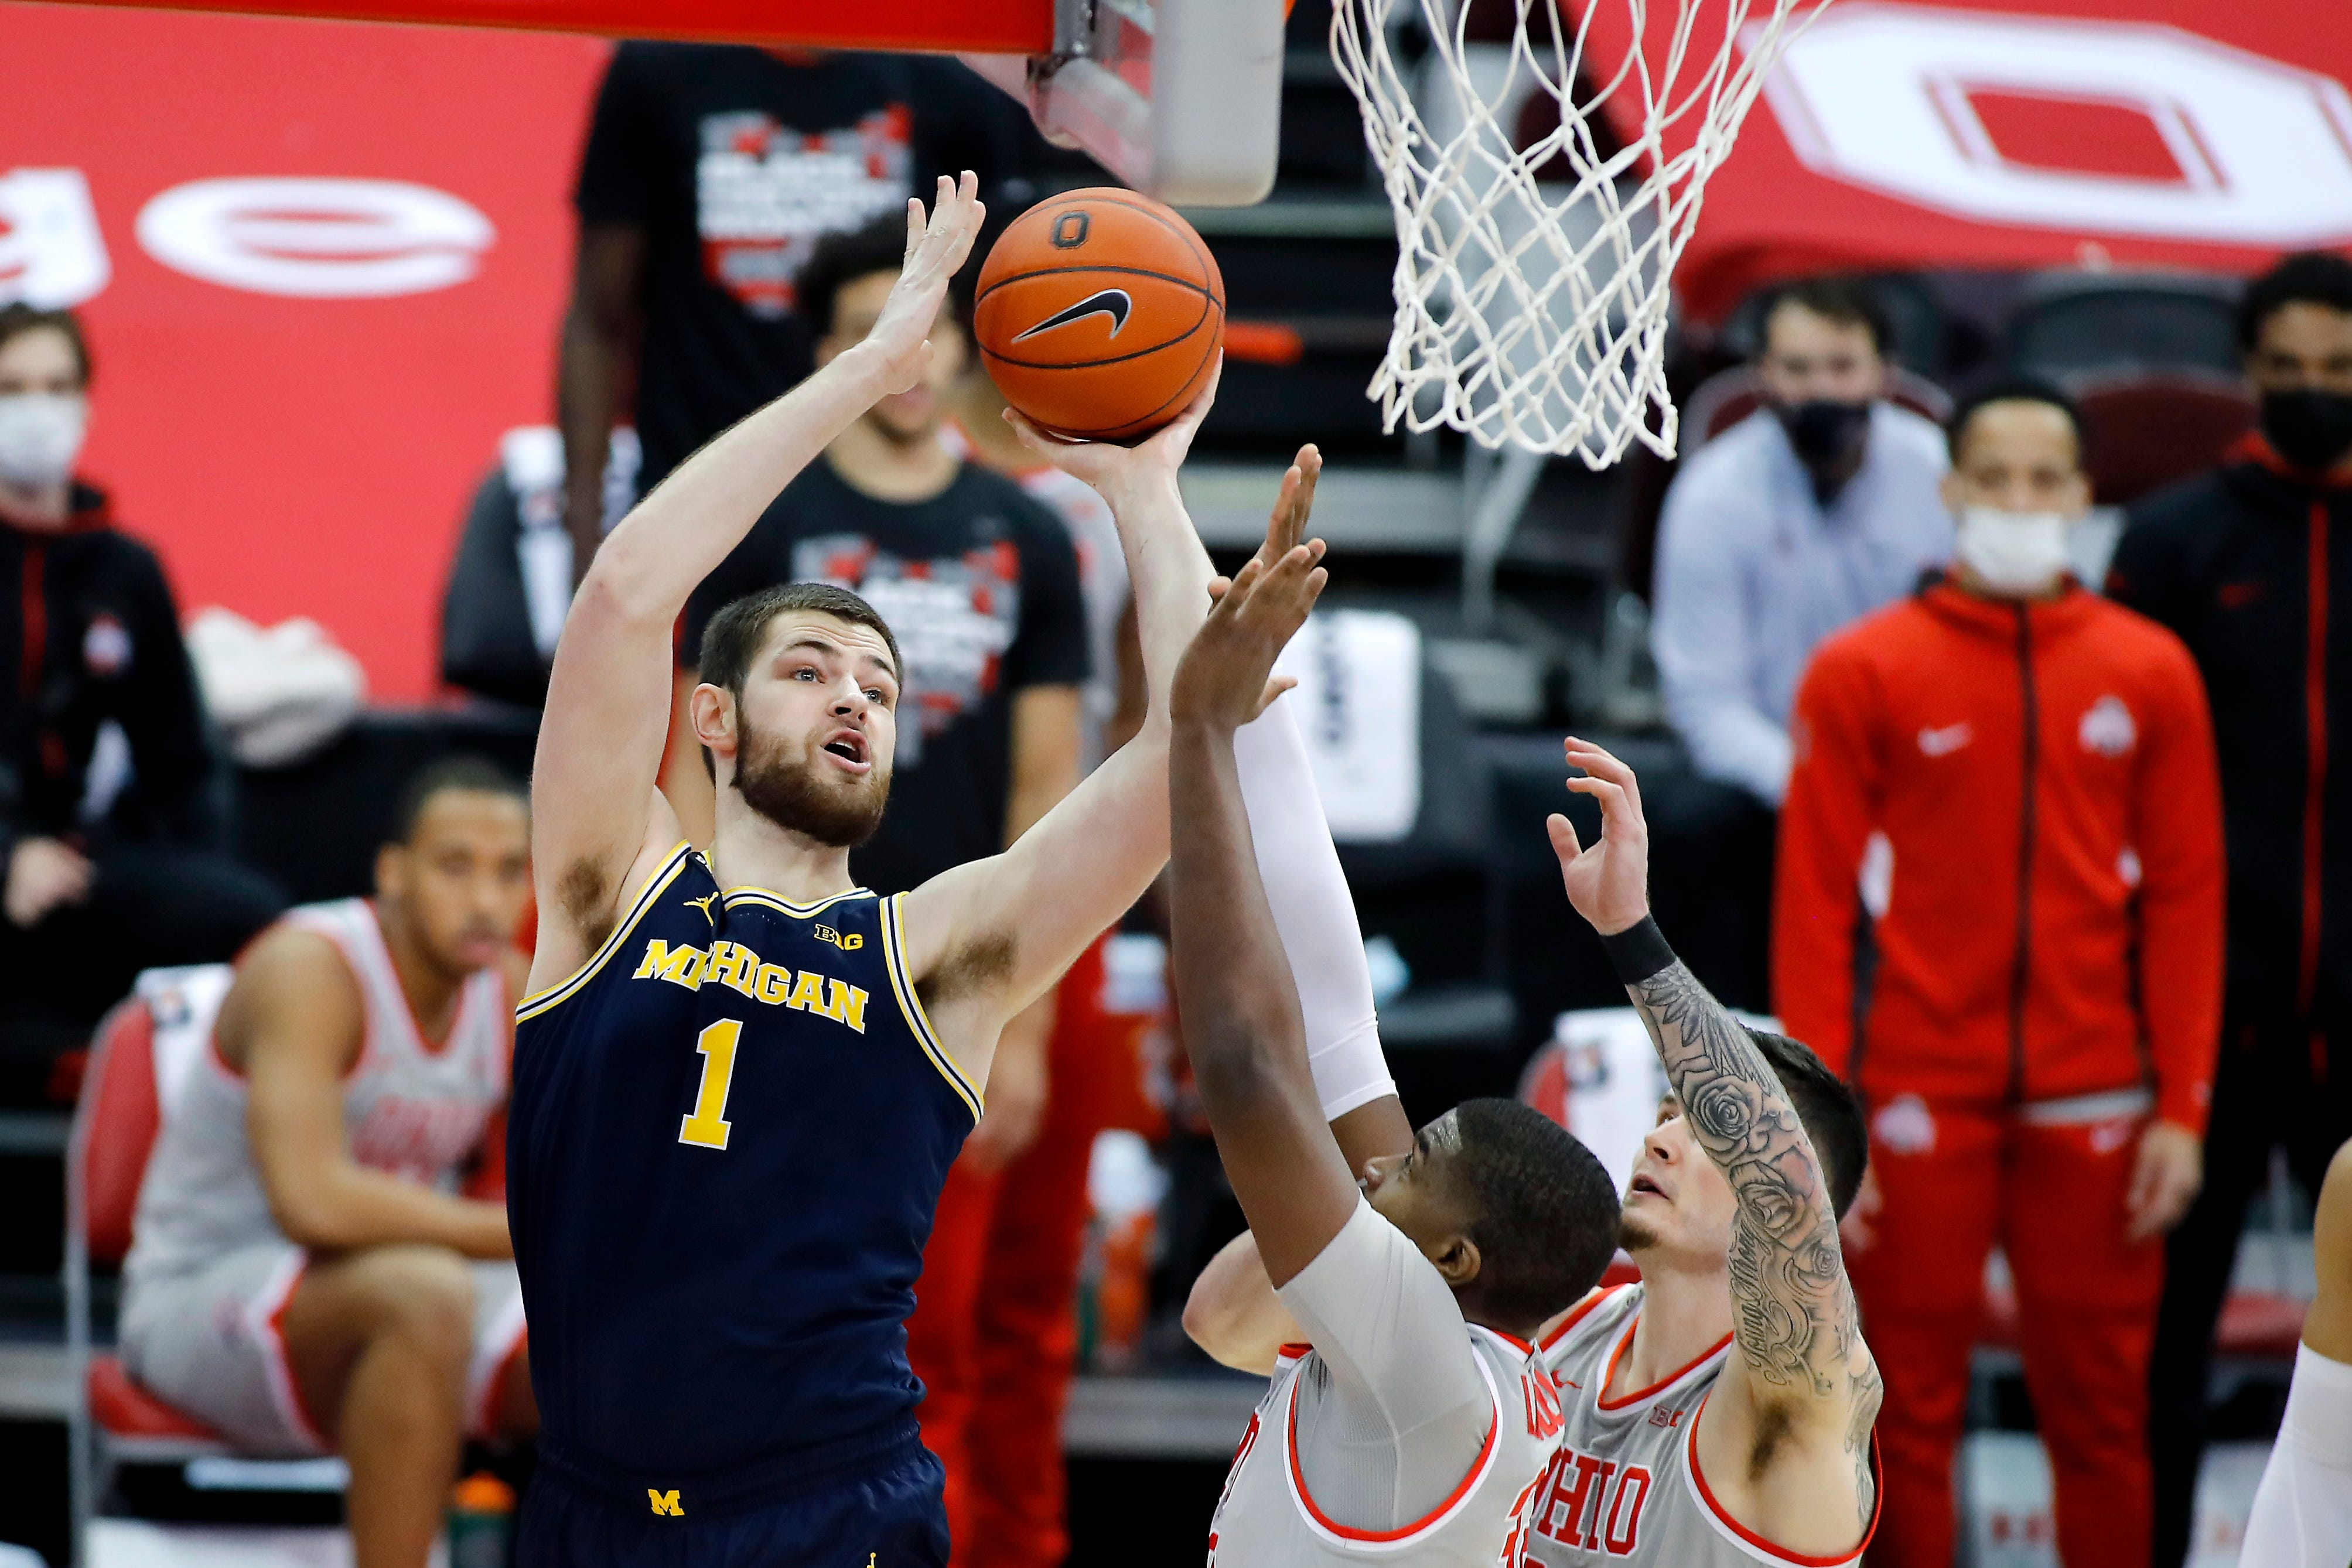 No. 3 Michigan men s basketball lands final punch in 92-87 win at No. 4 Ohio State